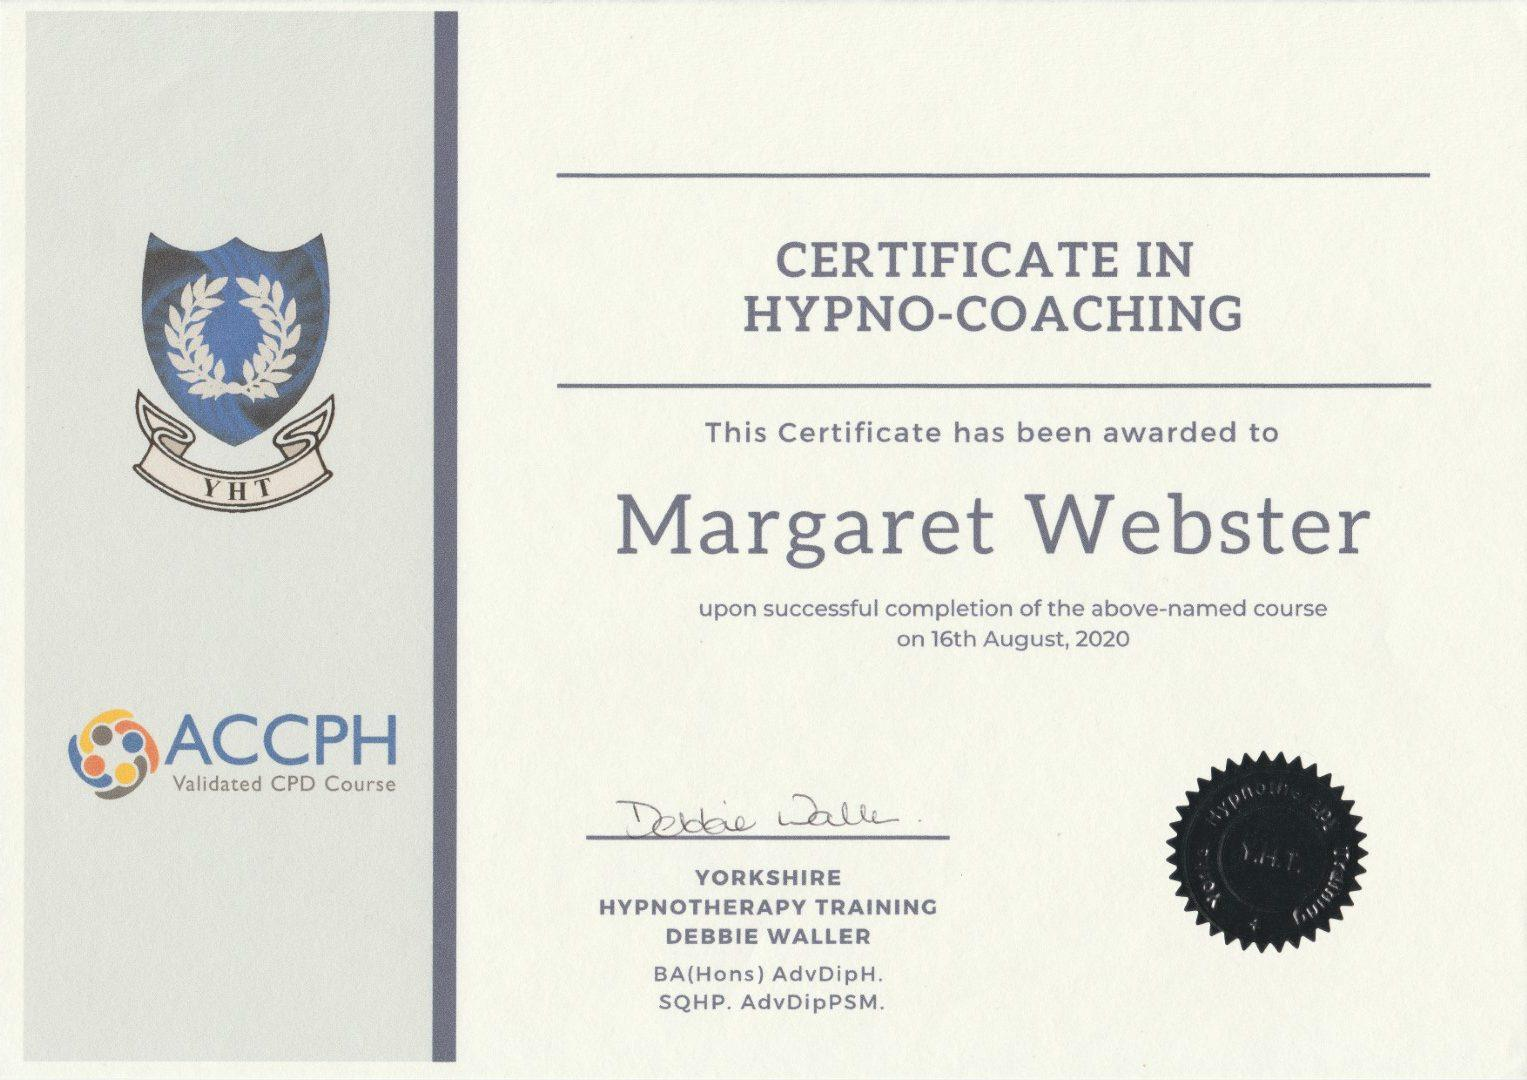 Hypno-coaching-Large-rotated-1